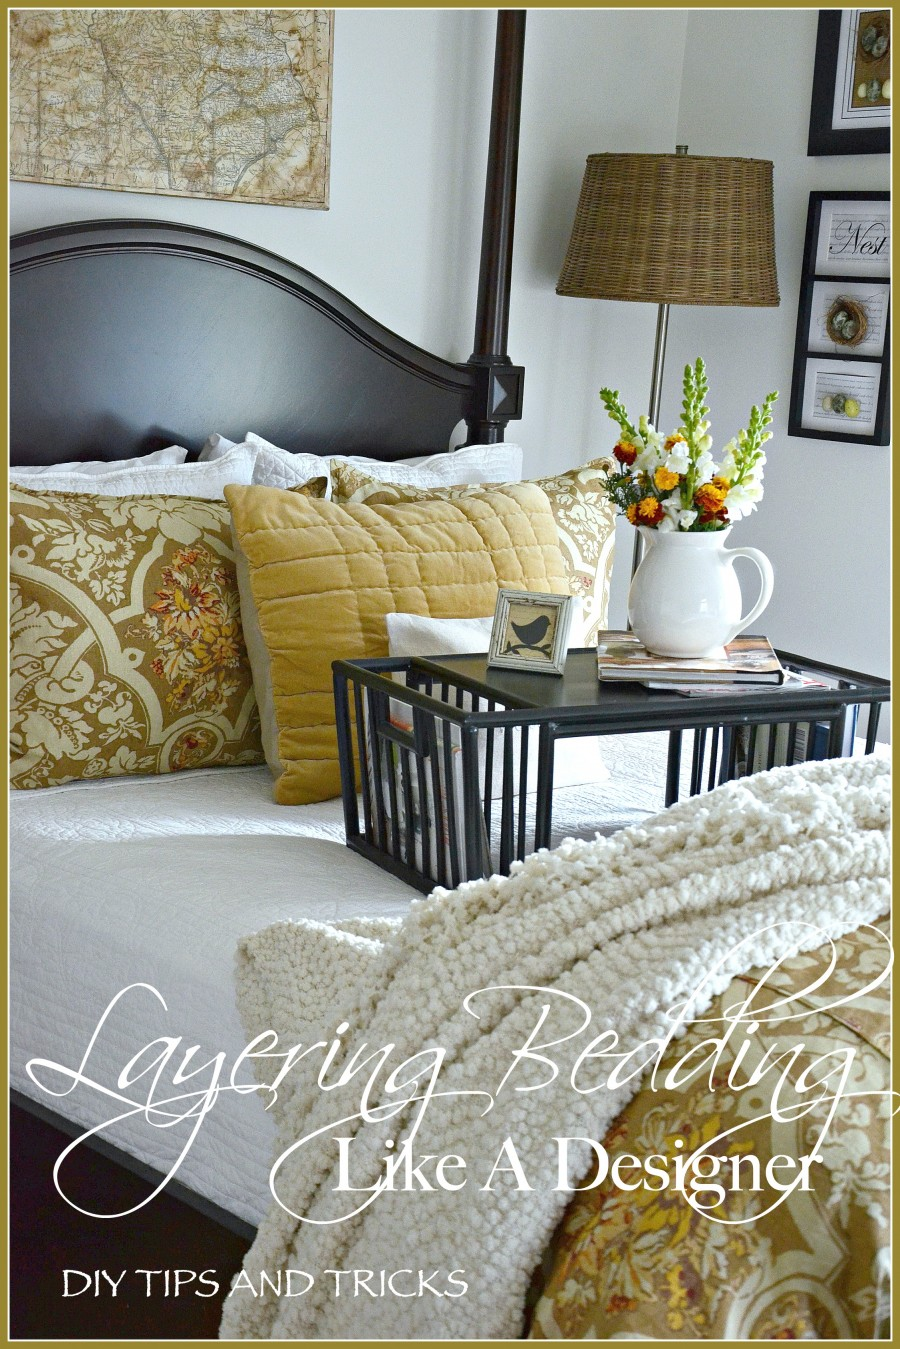 LAYERING BEDDING LIKE A DESIGNER… EASY TIPS AND TRICKS